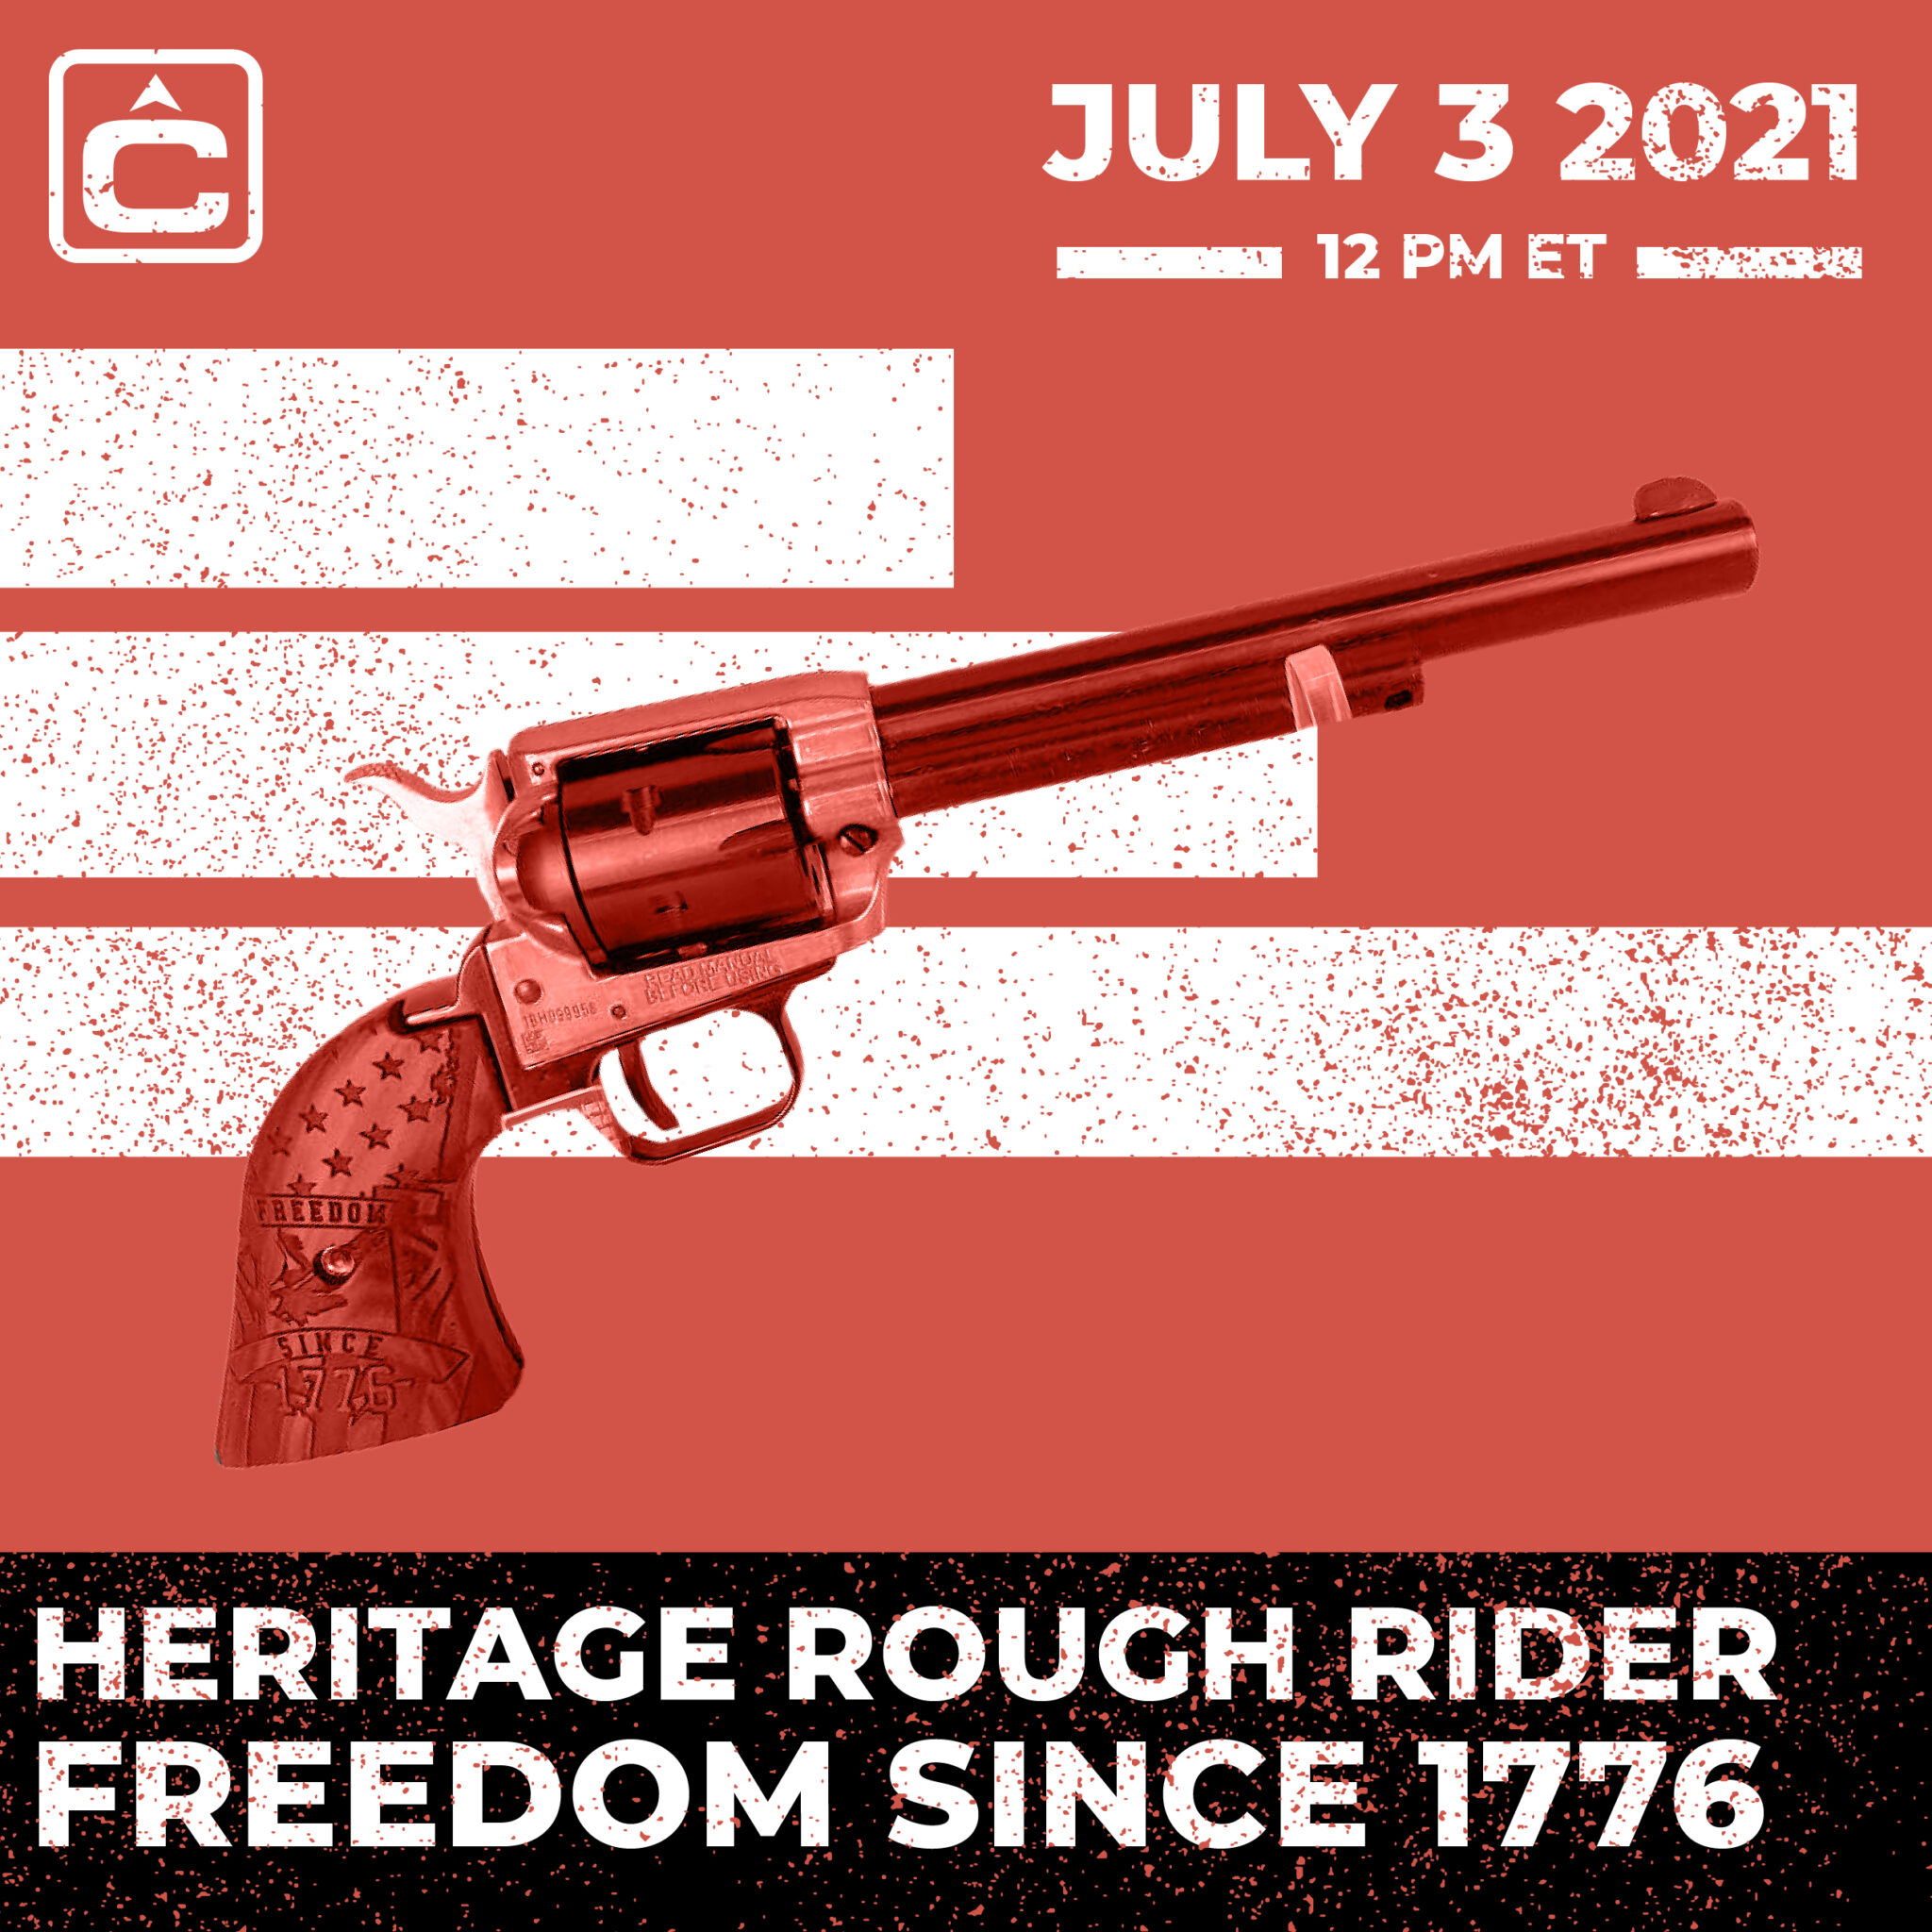 HERITAGE ROUGH RIDER - FREEDOM SINCE 1776